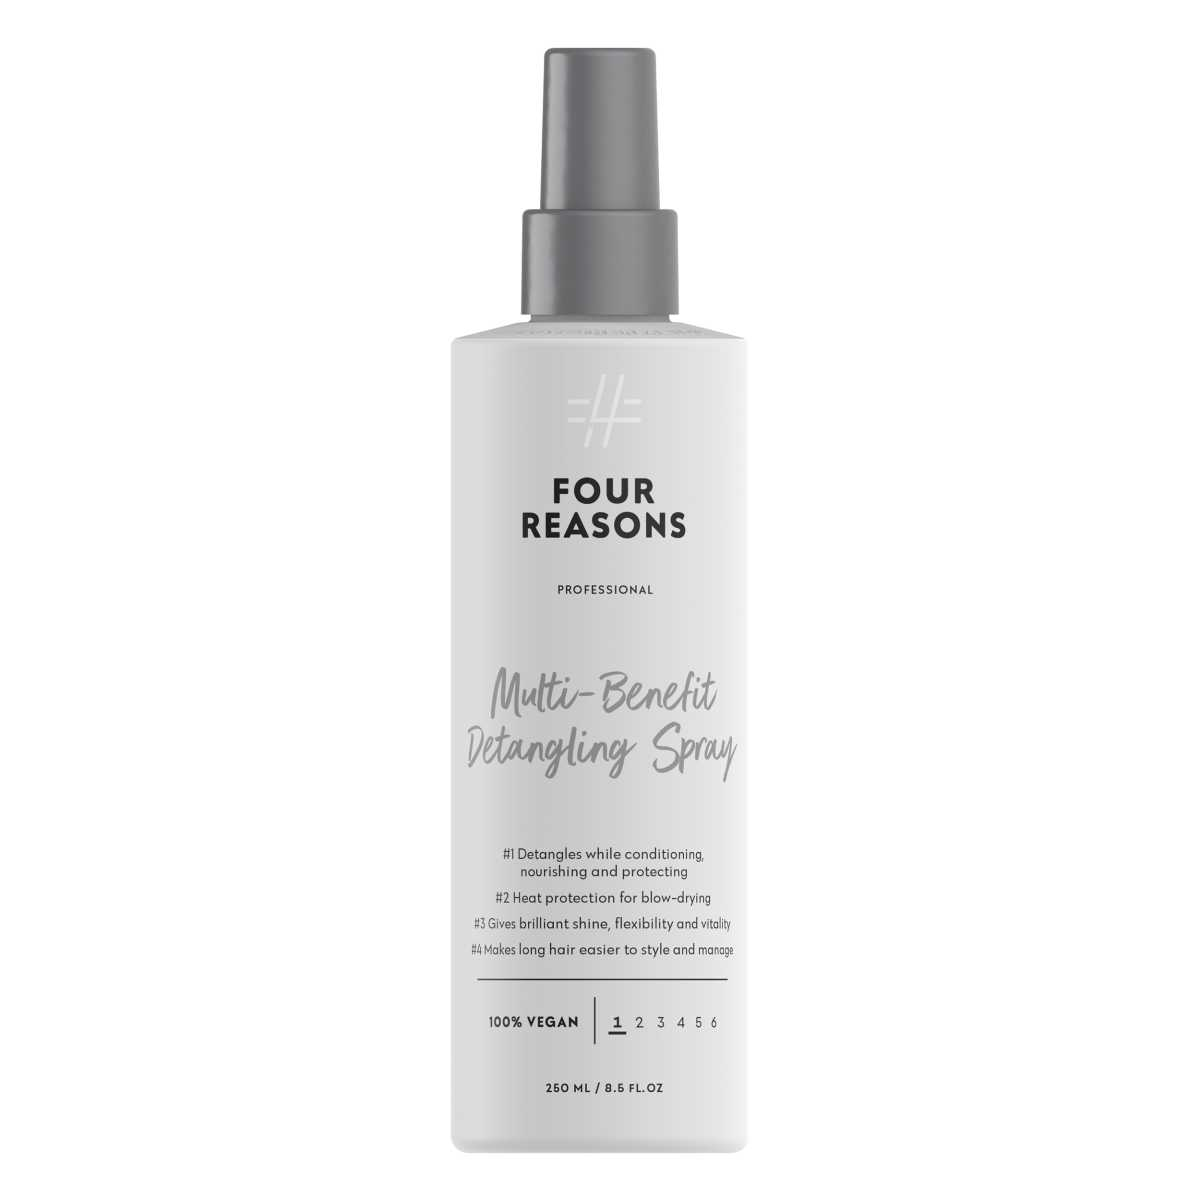 Four-Reasons-Professional-Multi-Benefit-Detangling-Spray